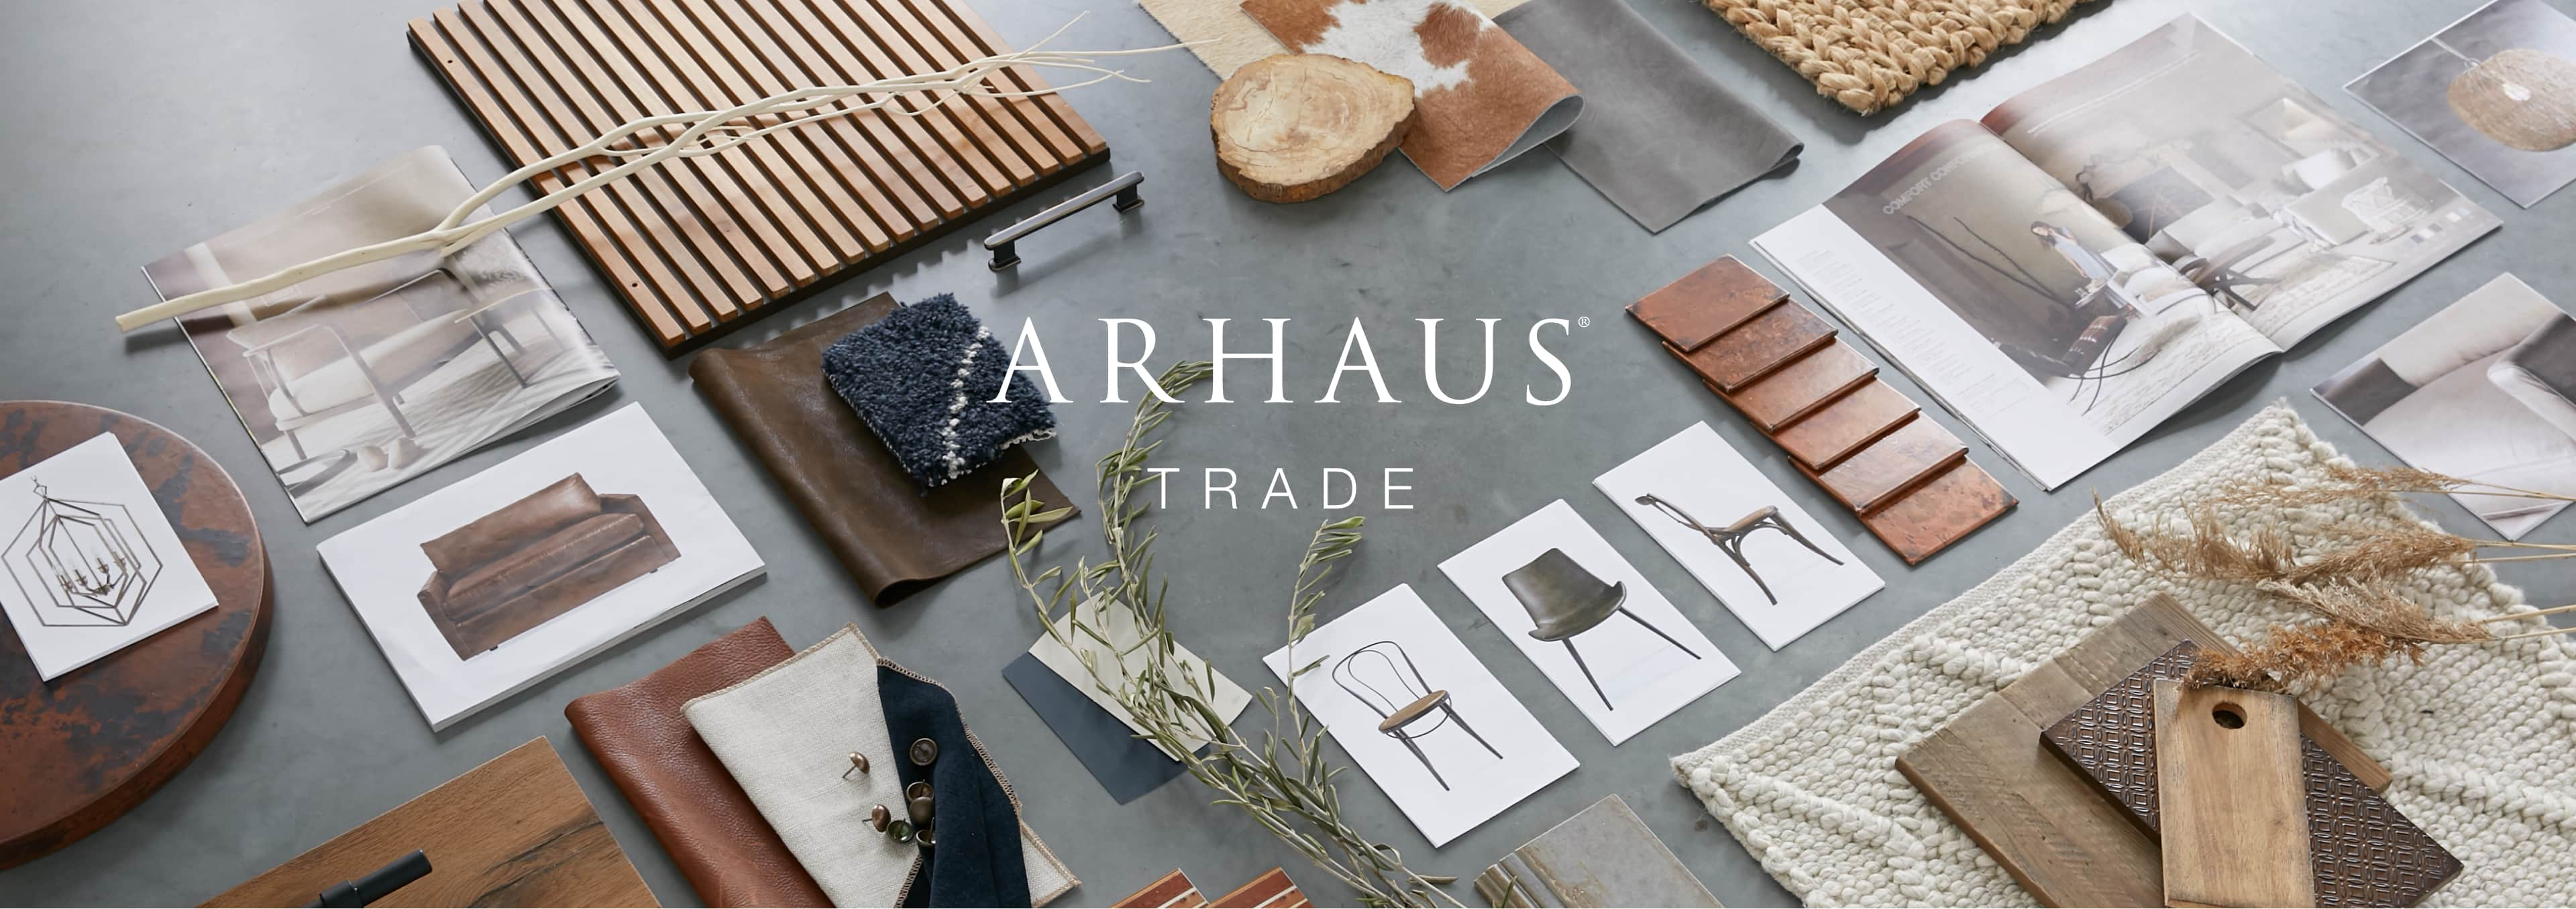 Arhaus Trade Services